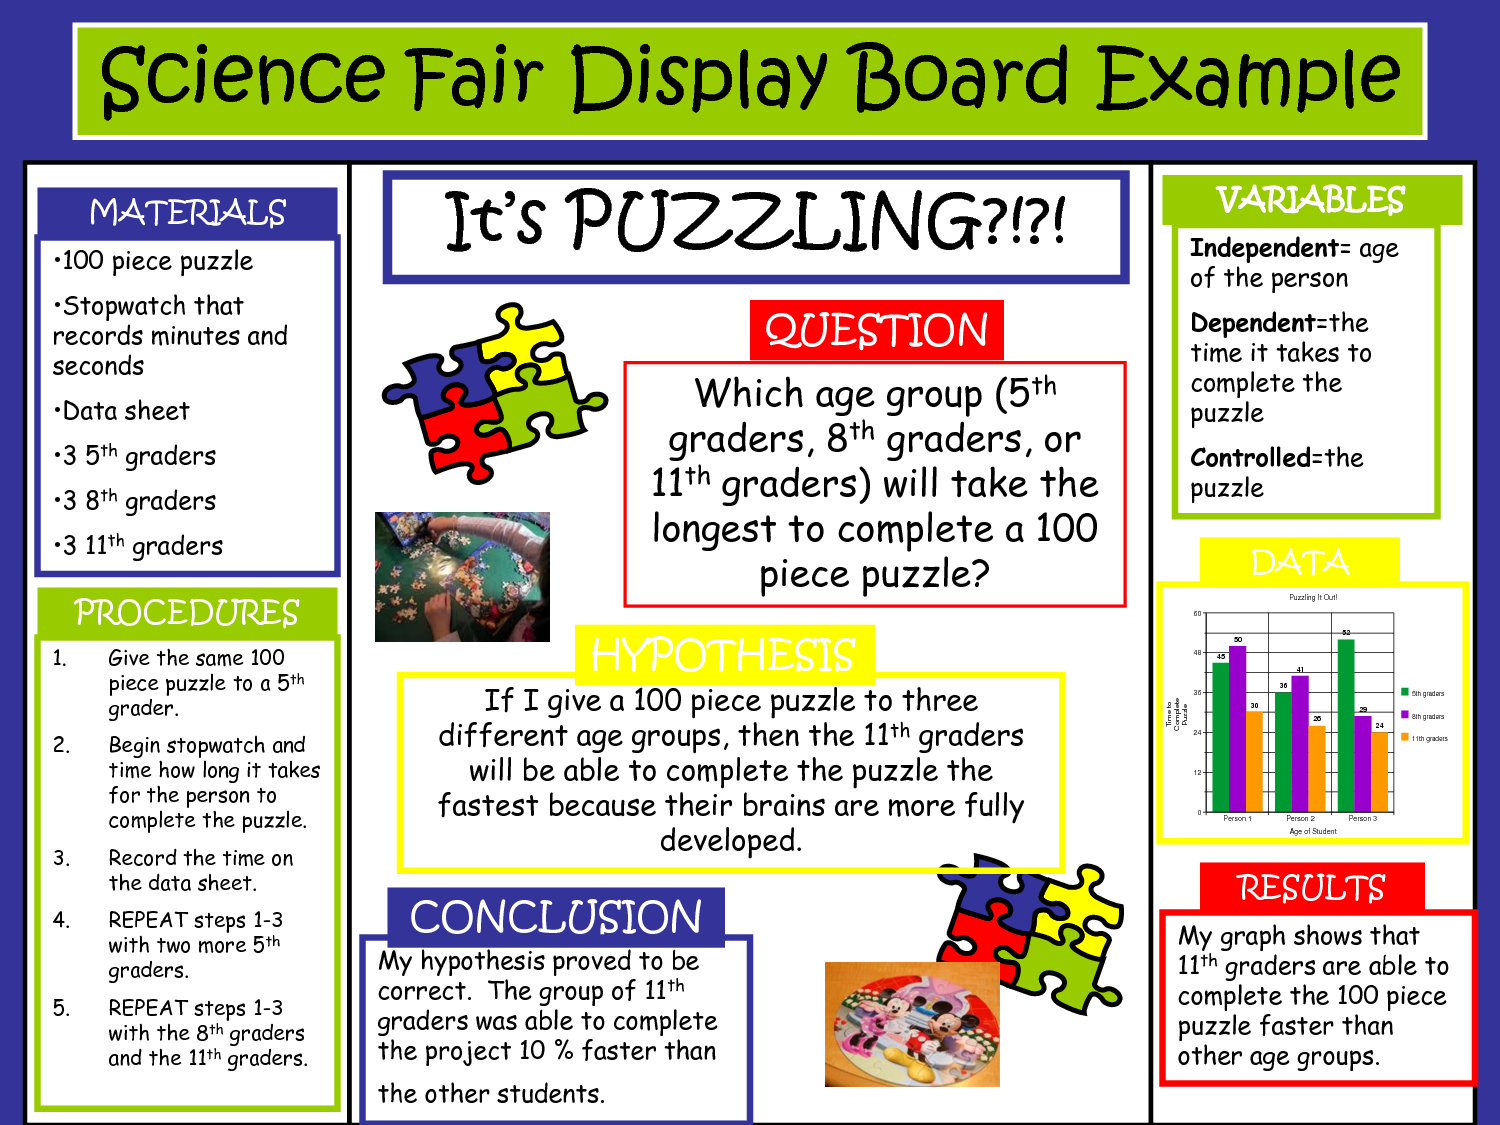 Science Fair Project Boards Examples   Science Fair Display Board - Free Printable Science Fair Project Board Labels